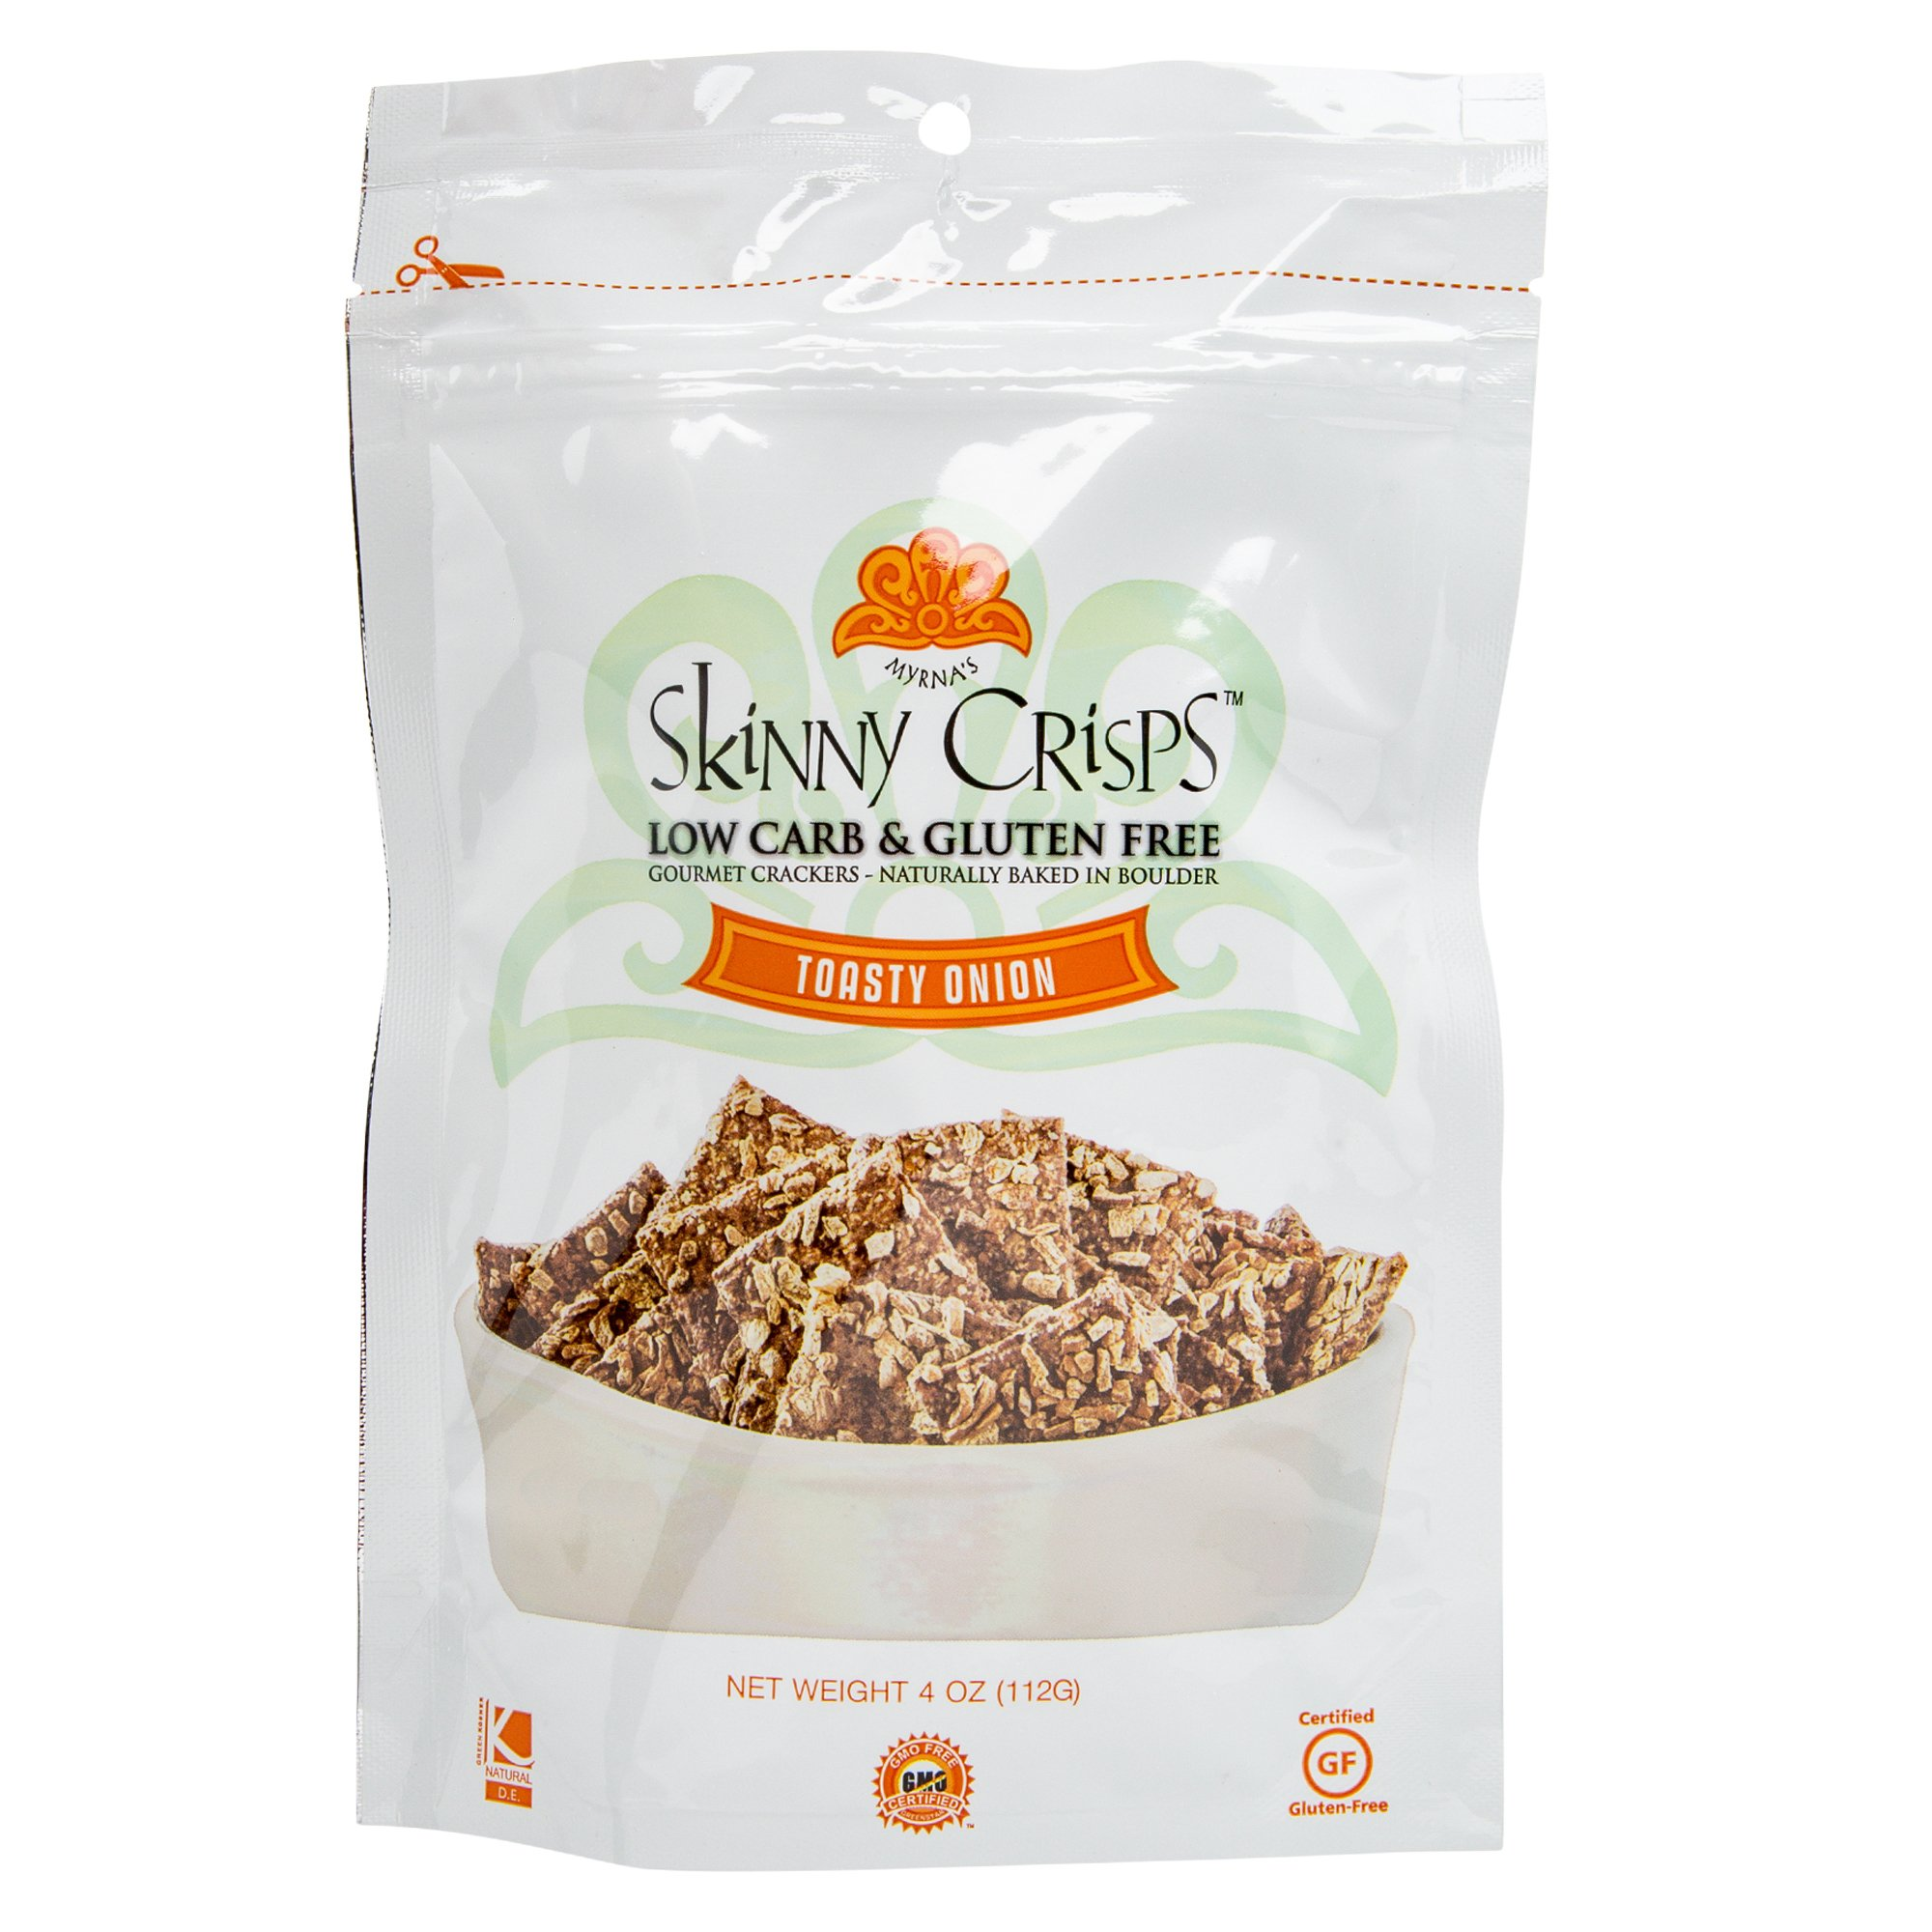 Skinny Crisps Toasty Onion Low Carb Gluten Free Gourmet Crackers 4 Oz Bag Toasty Onion, 1 Bag